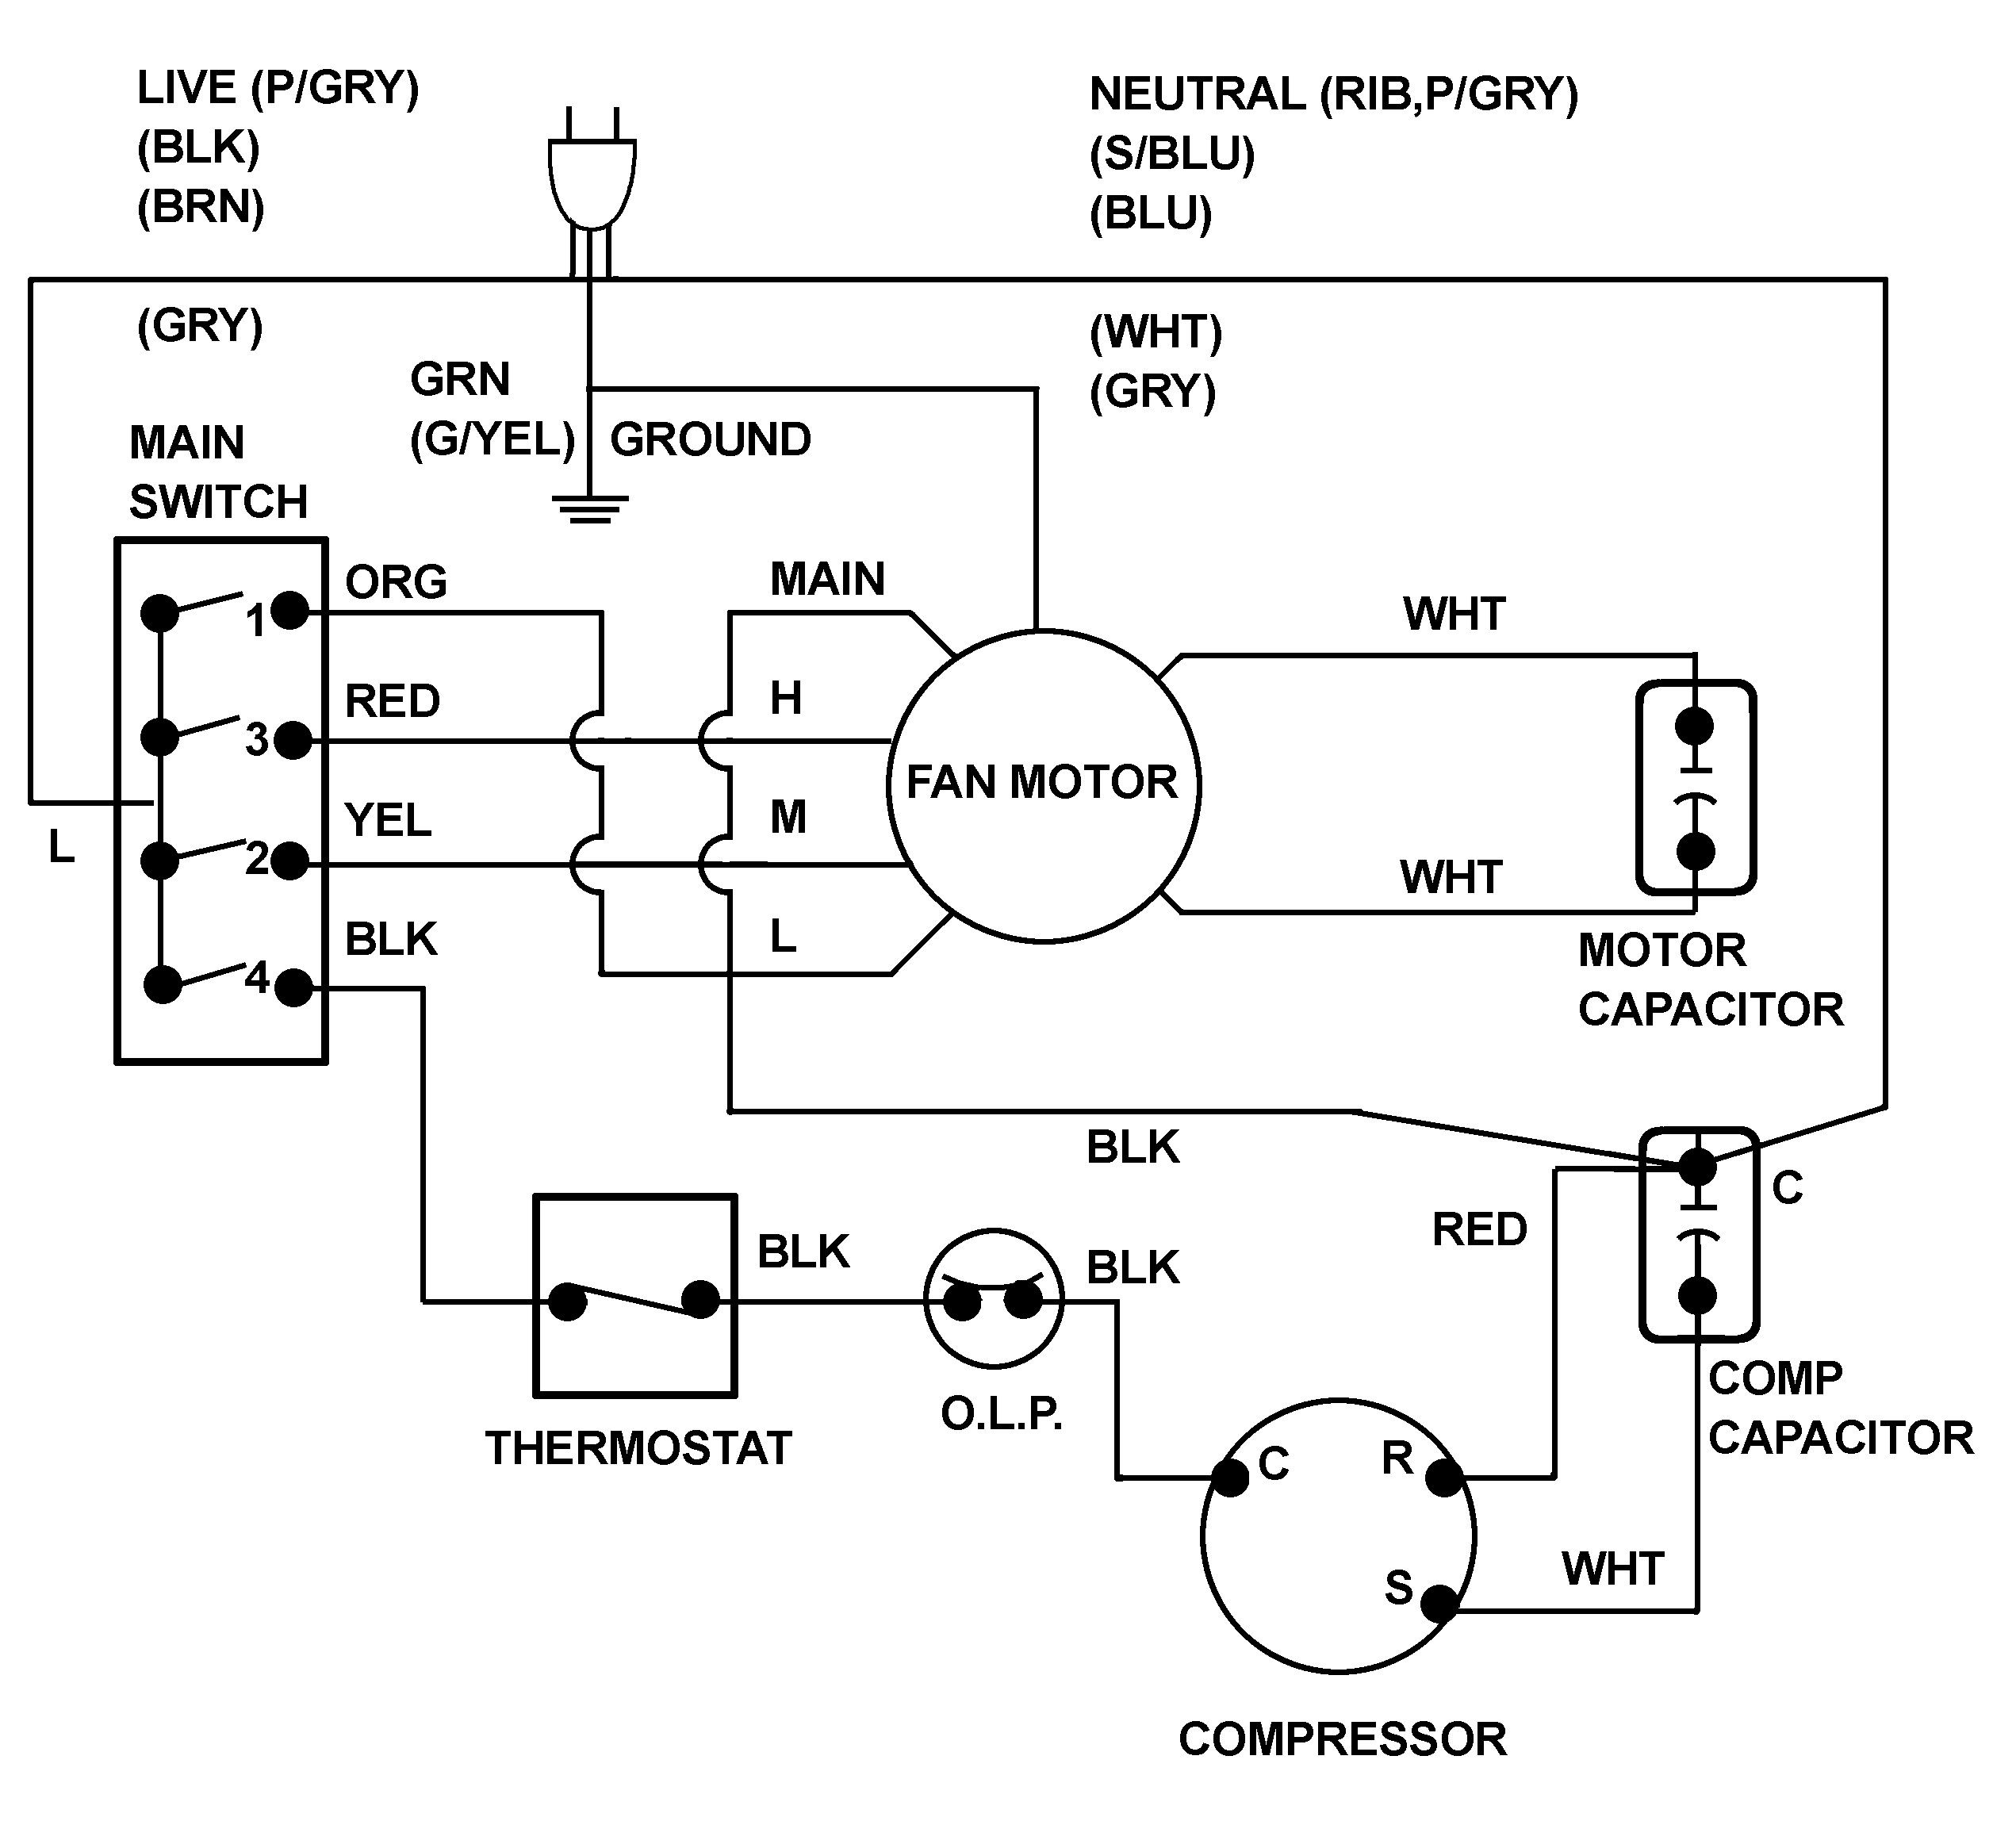 New Wiring Diagram Kompresor Ac Diagram Diagramtemplate Diagramsample Ac Wiring Thermostat Wiring Circuit Diagram